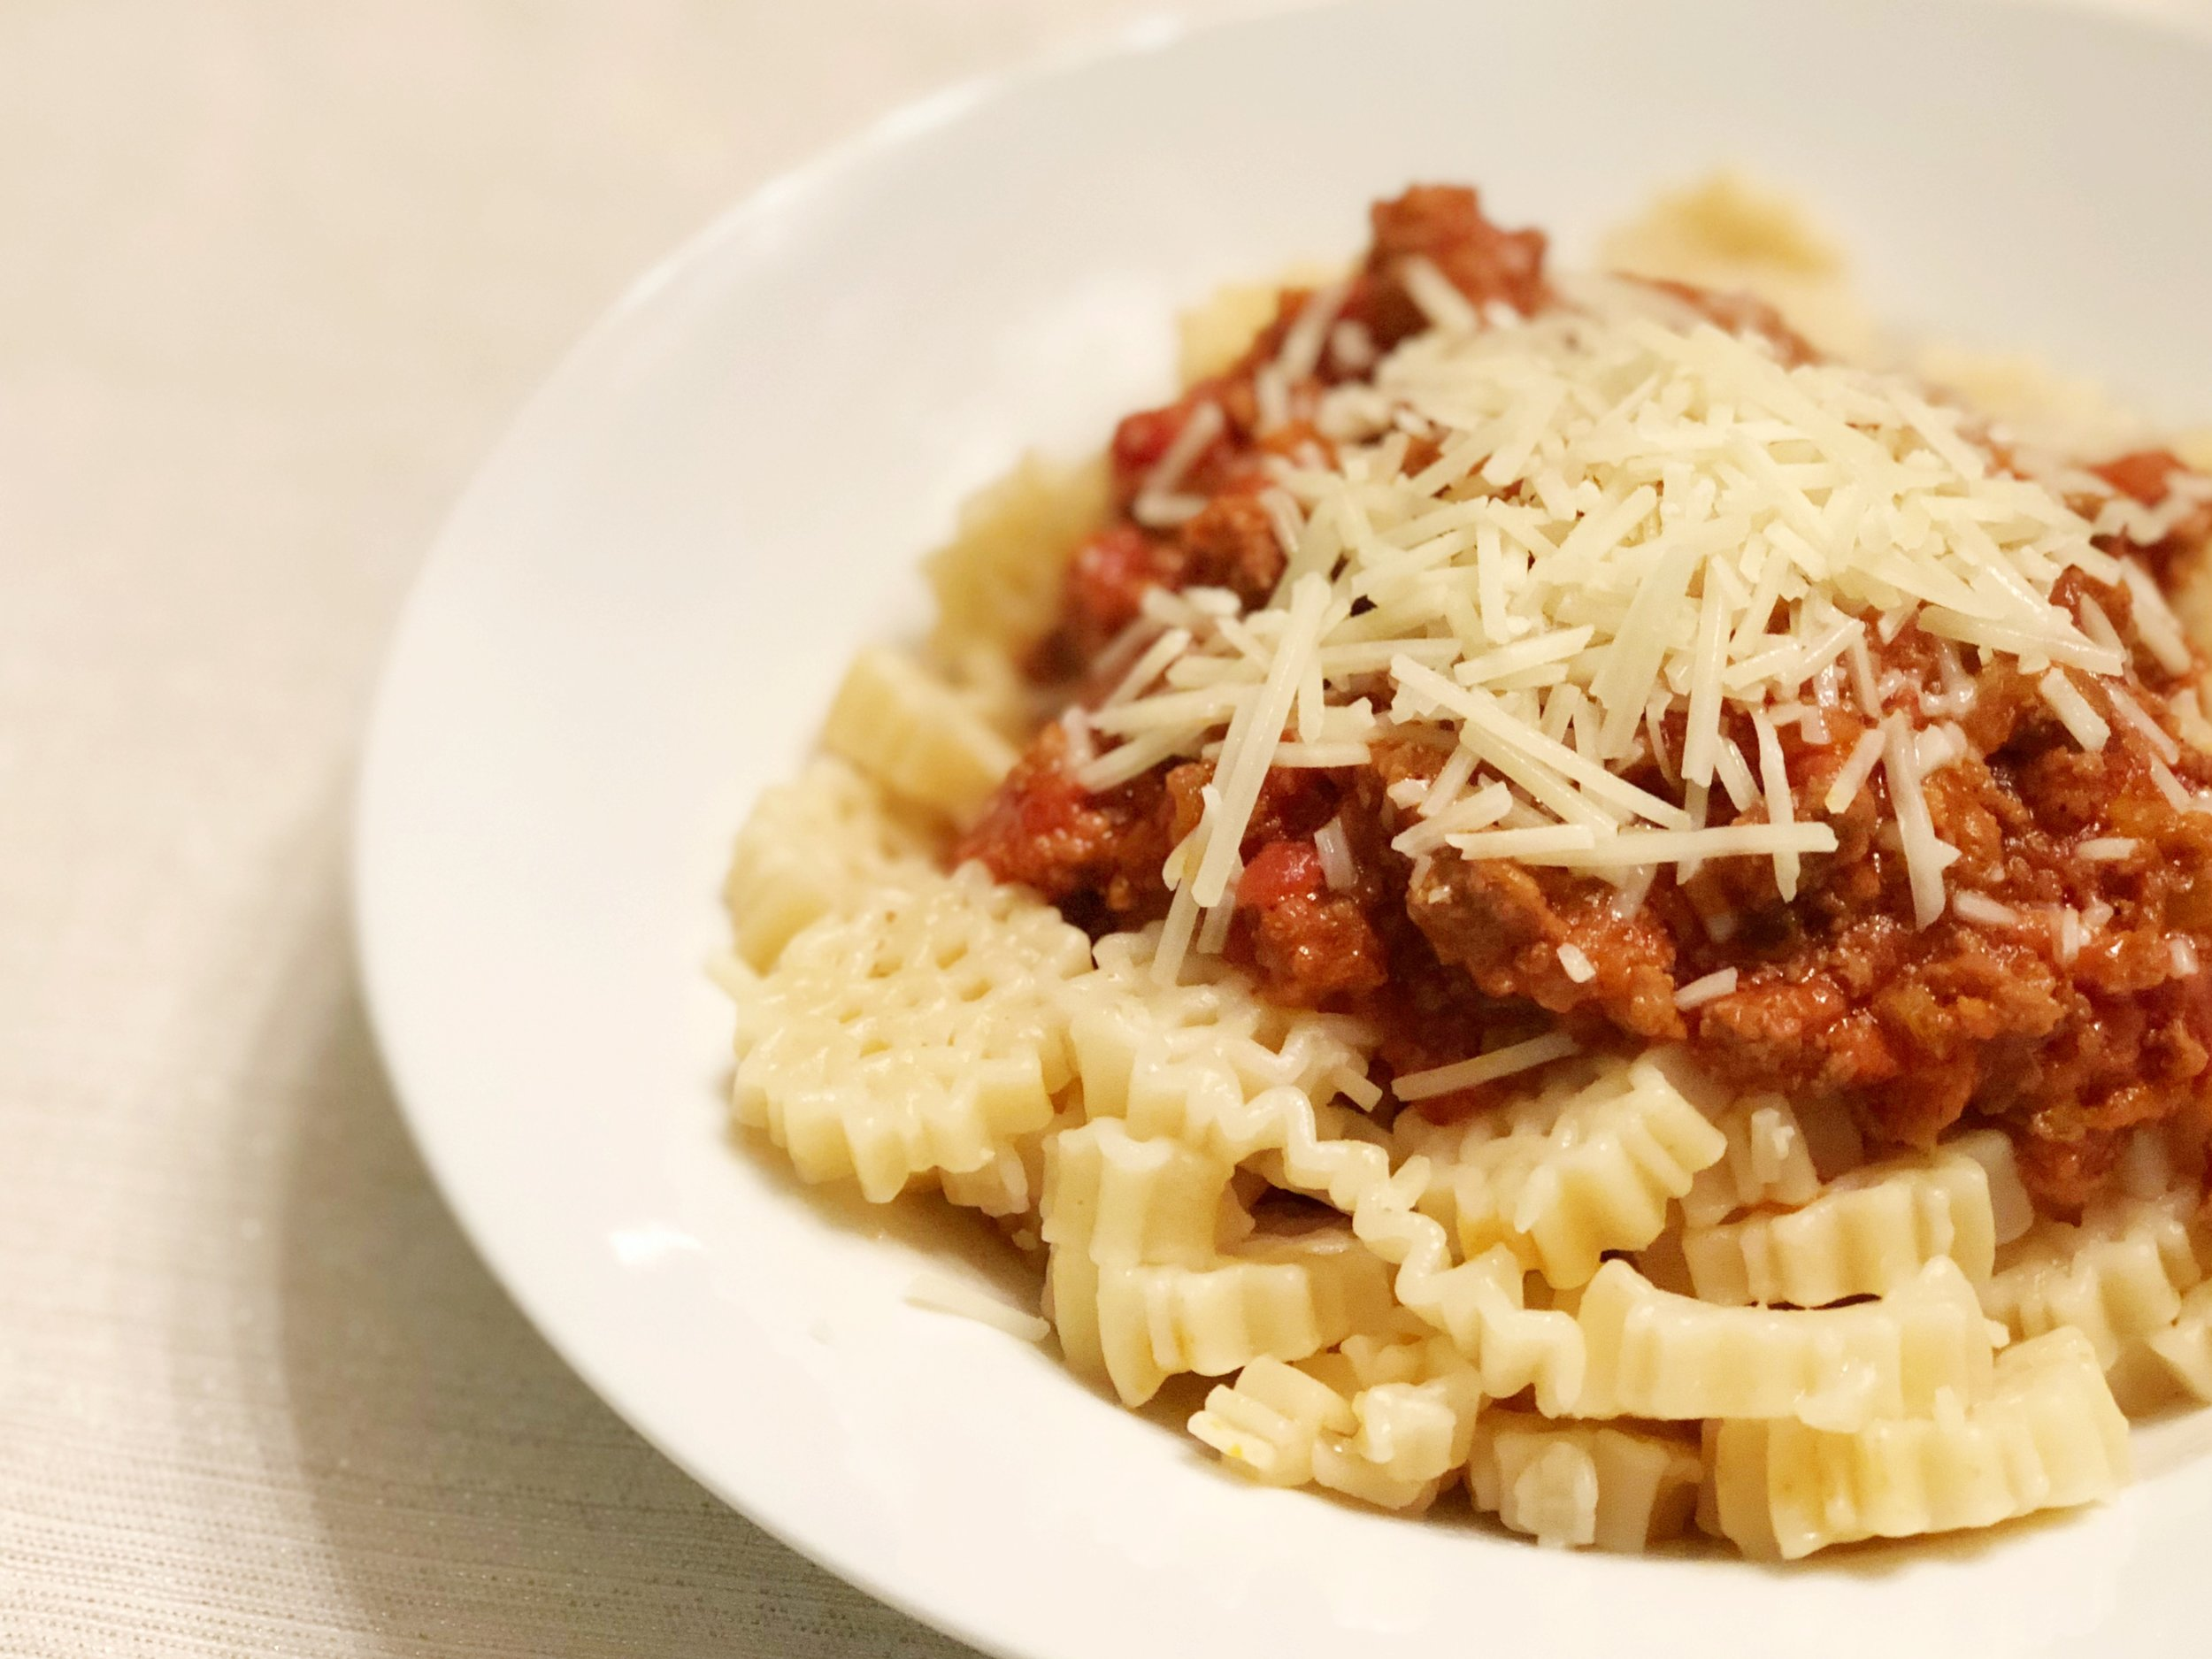 bolognese-sauce-on-snowflake-pasta-from-trader-joes